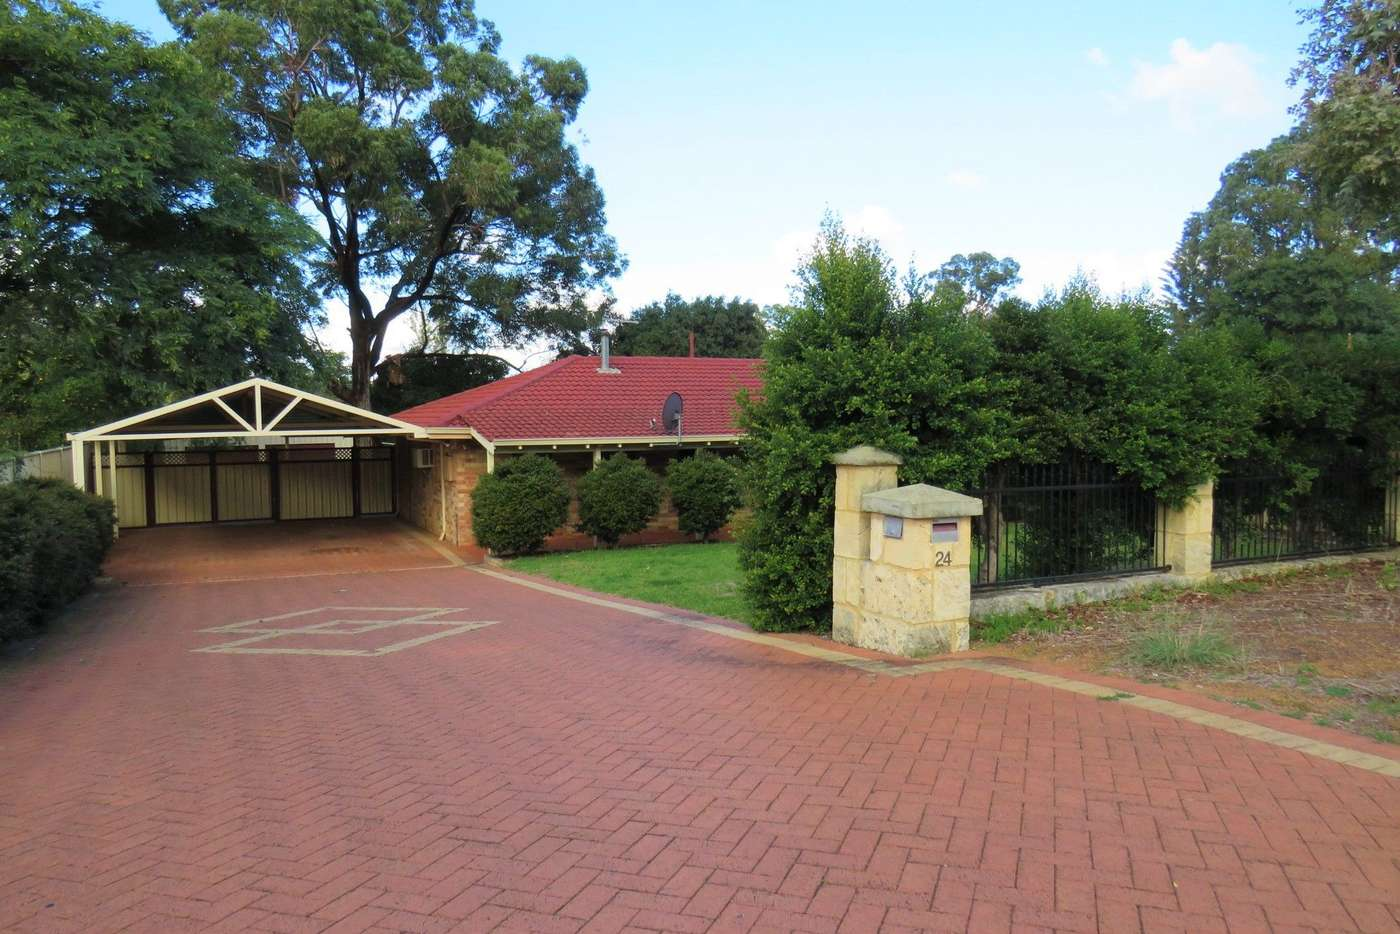 Main view of Homely house listing, 24 Shield Road, Lesmurdie WA 6076